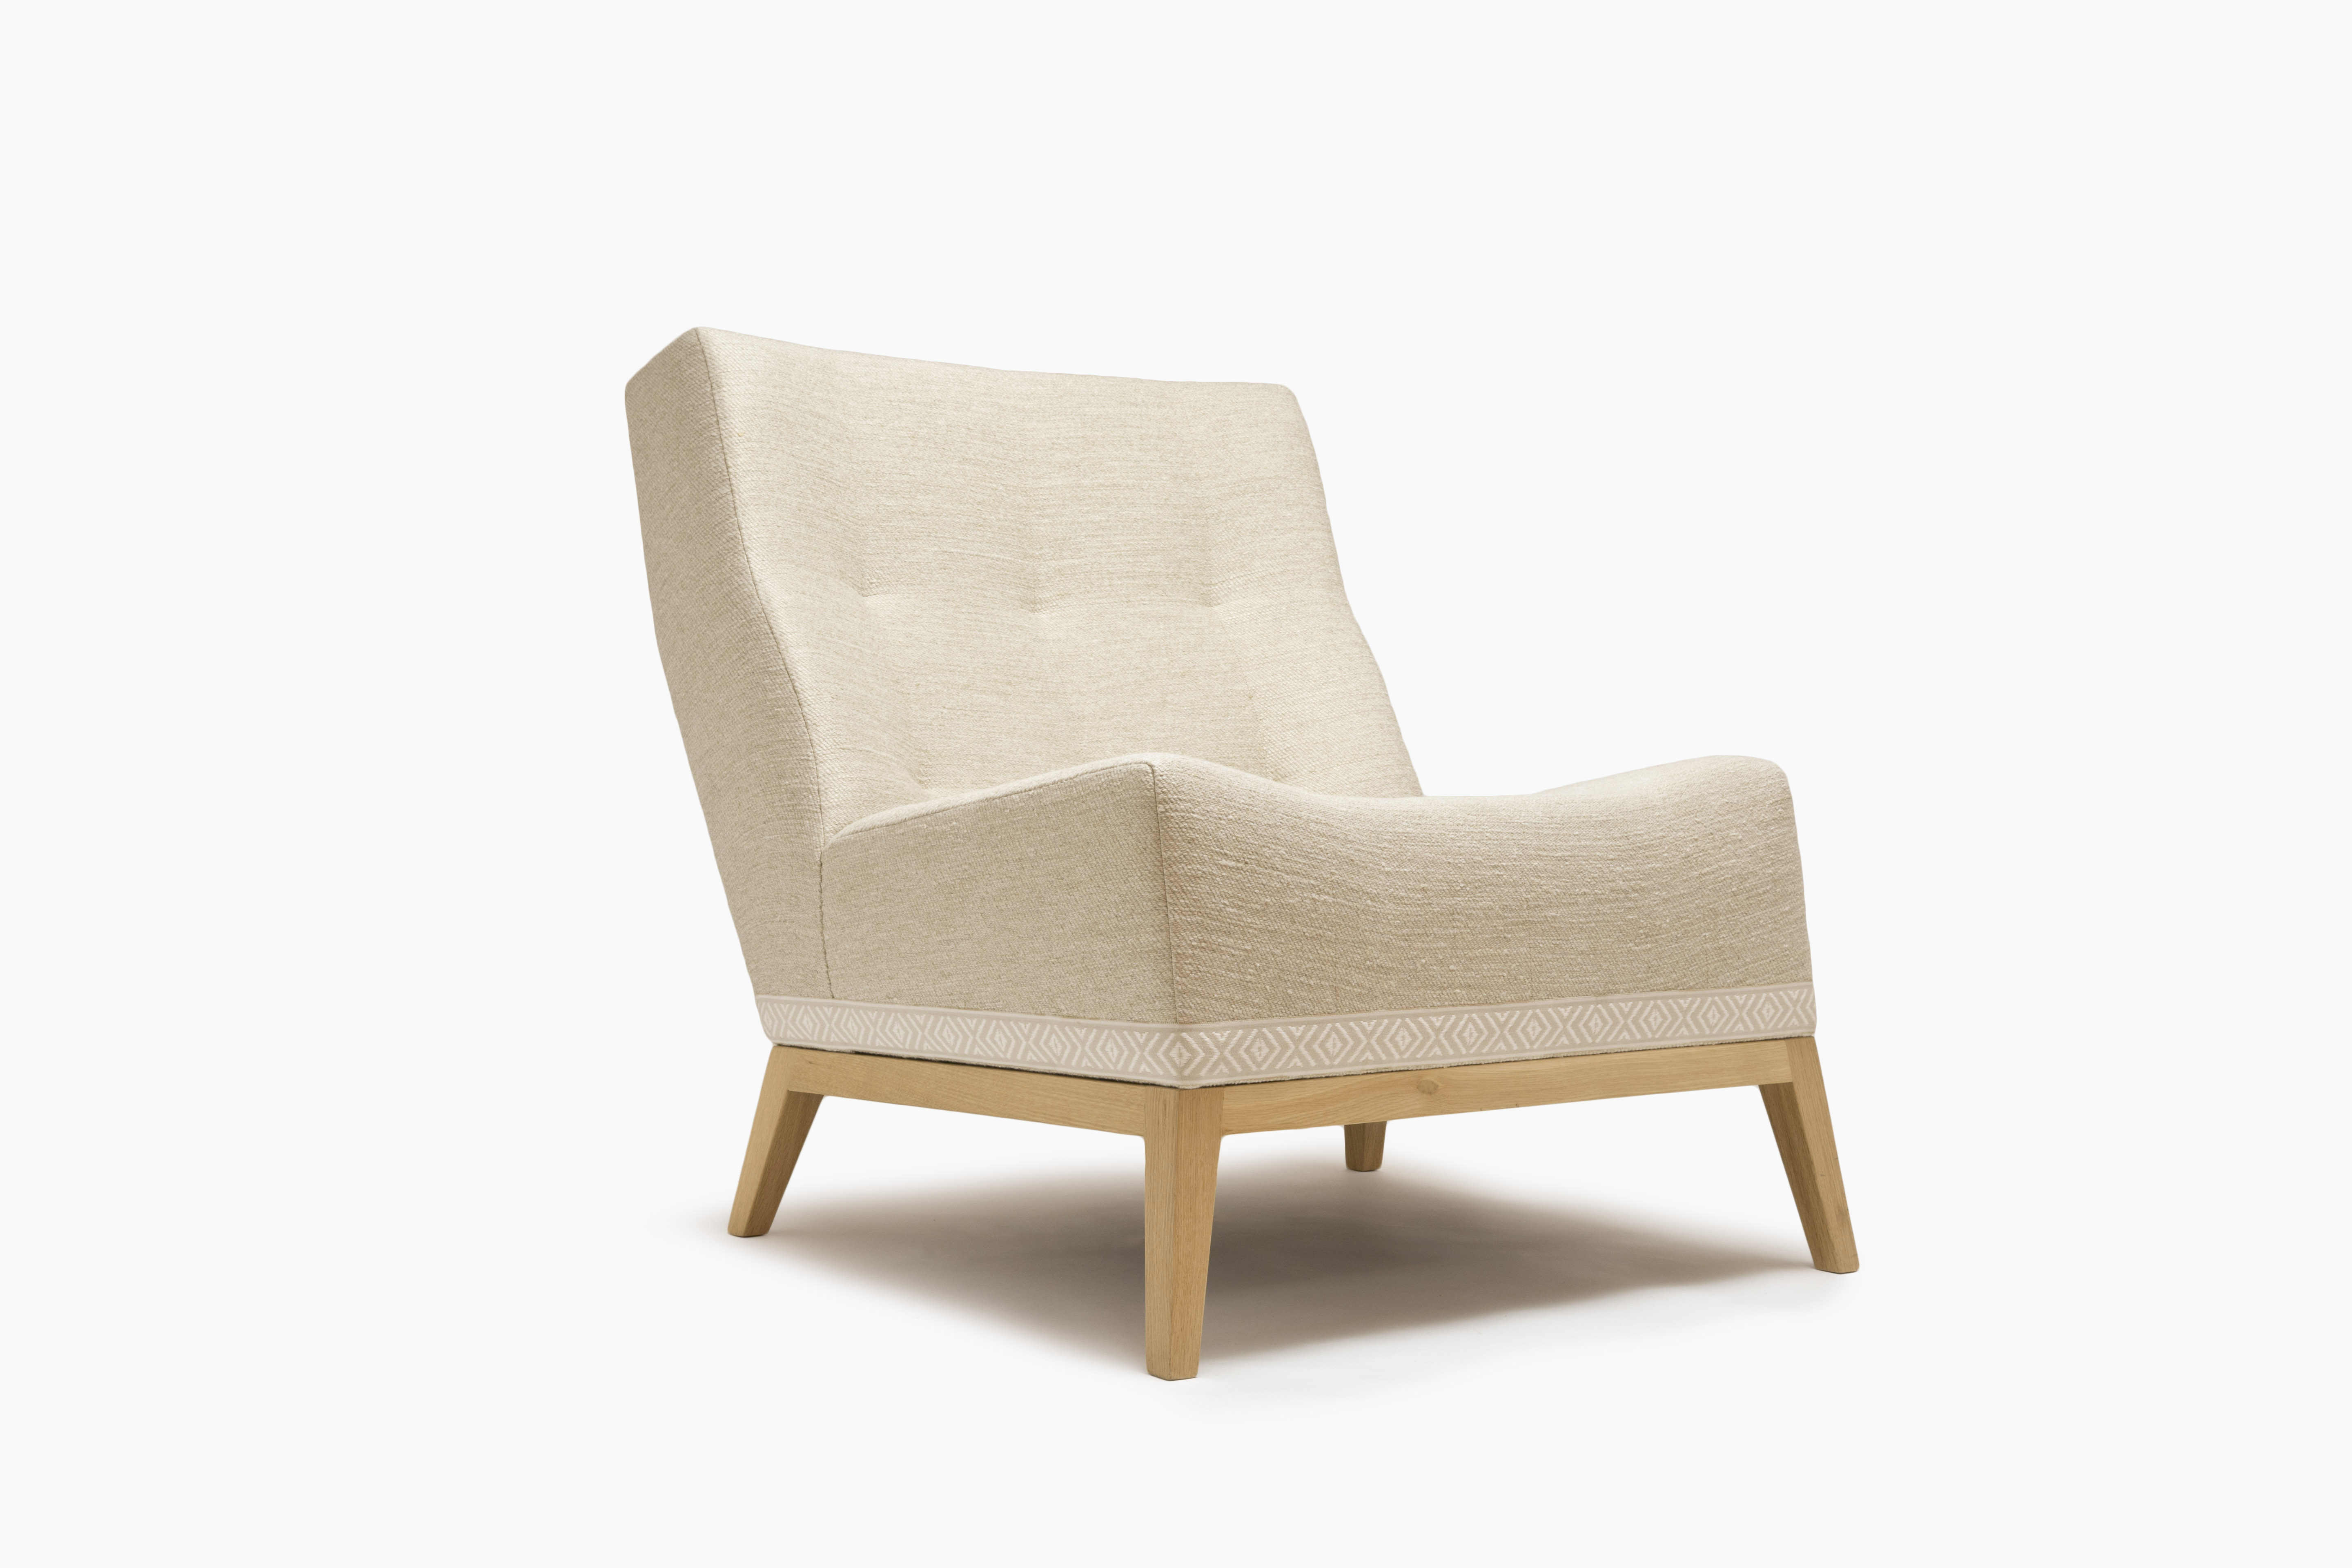 Theo chair three quarter view